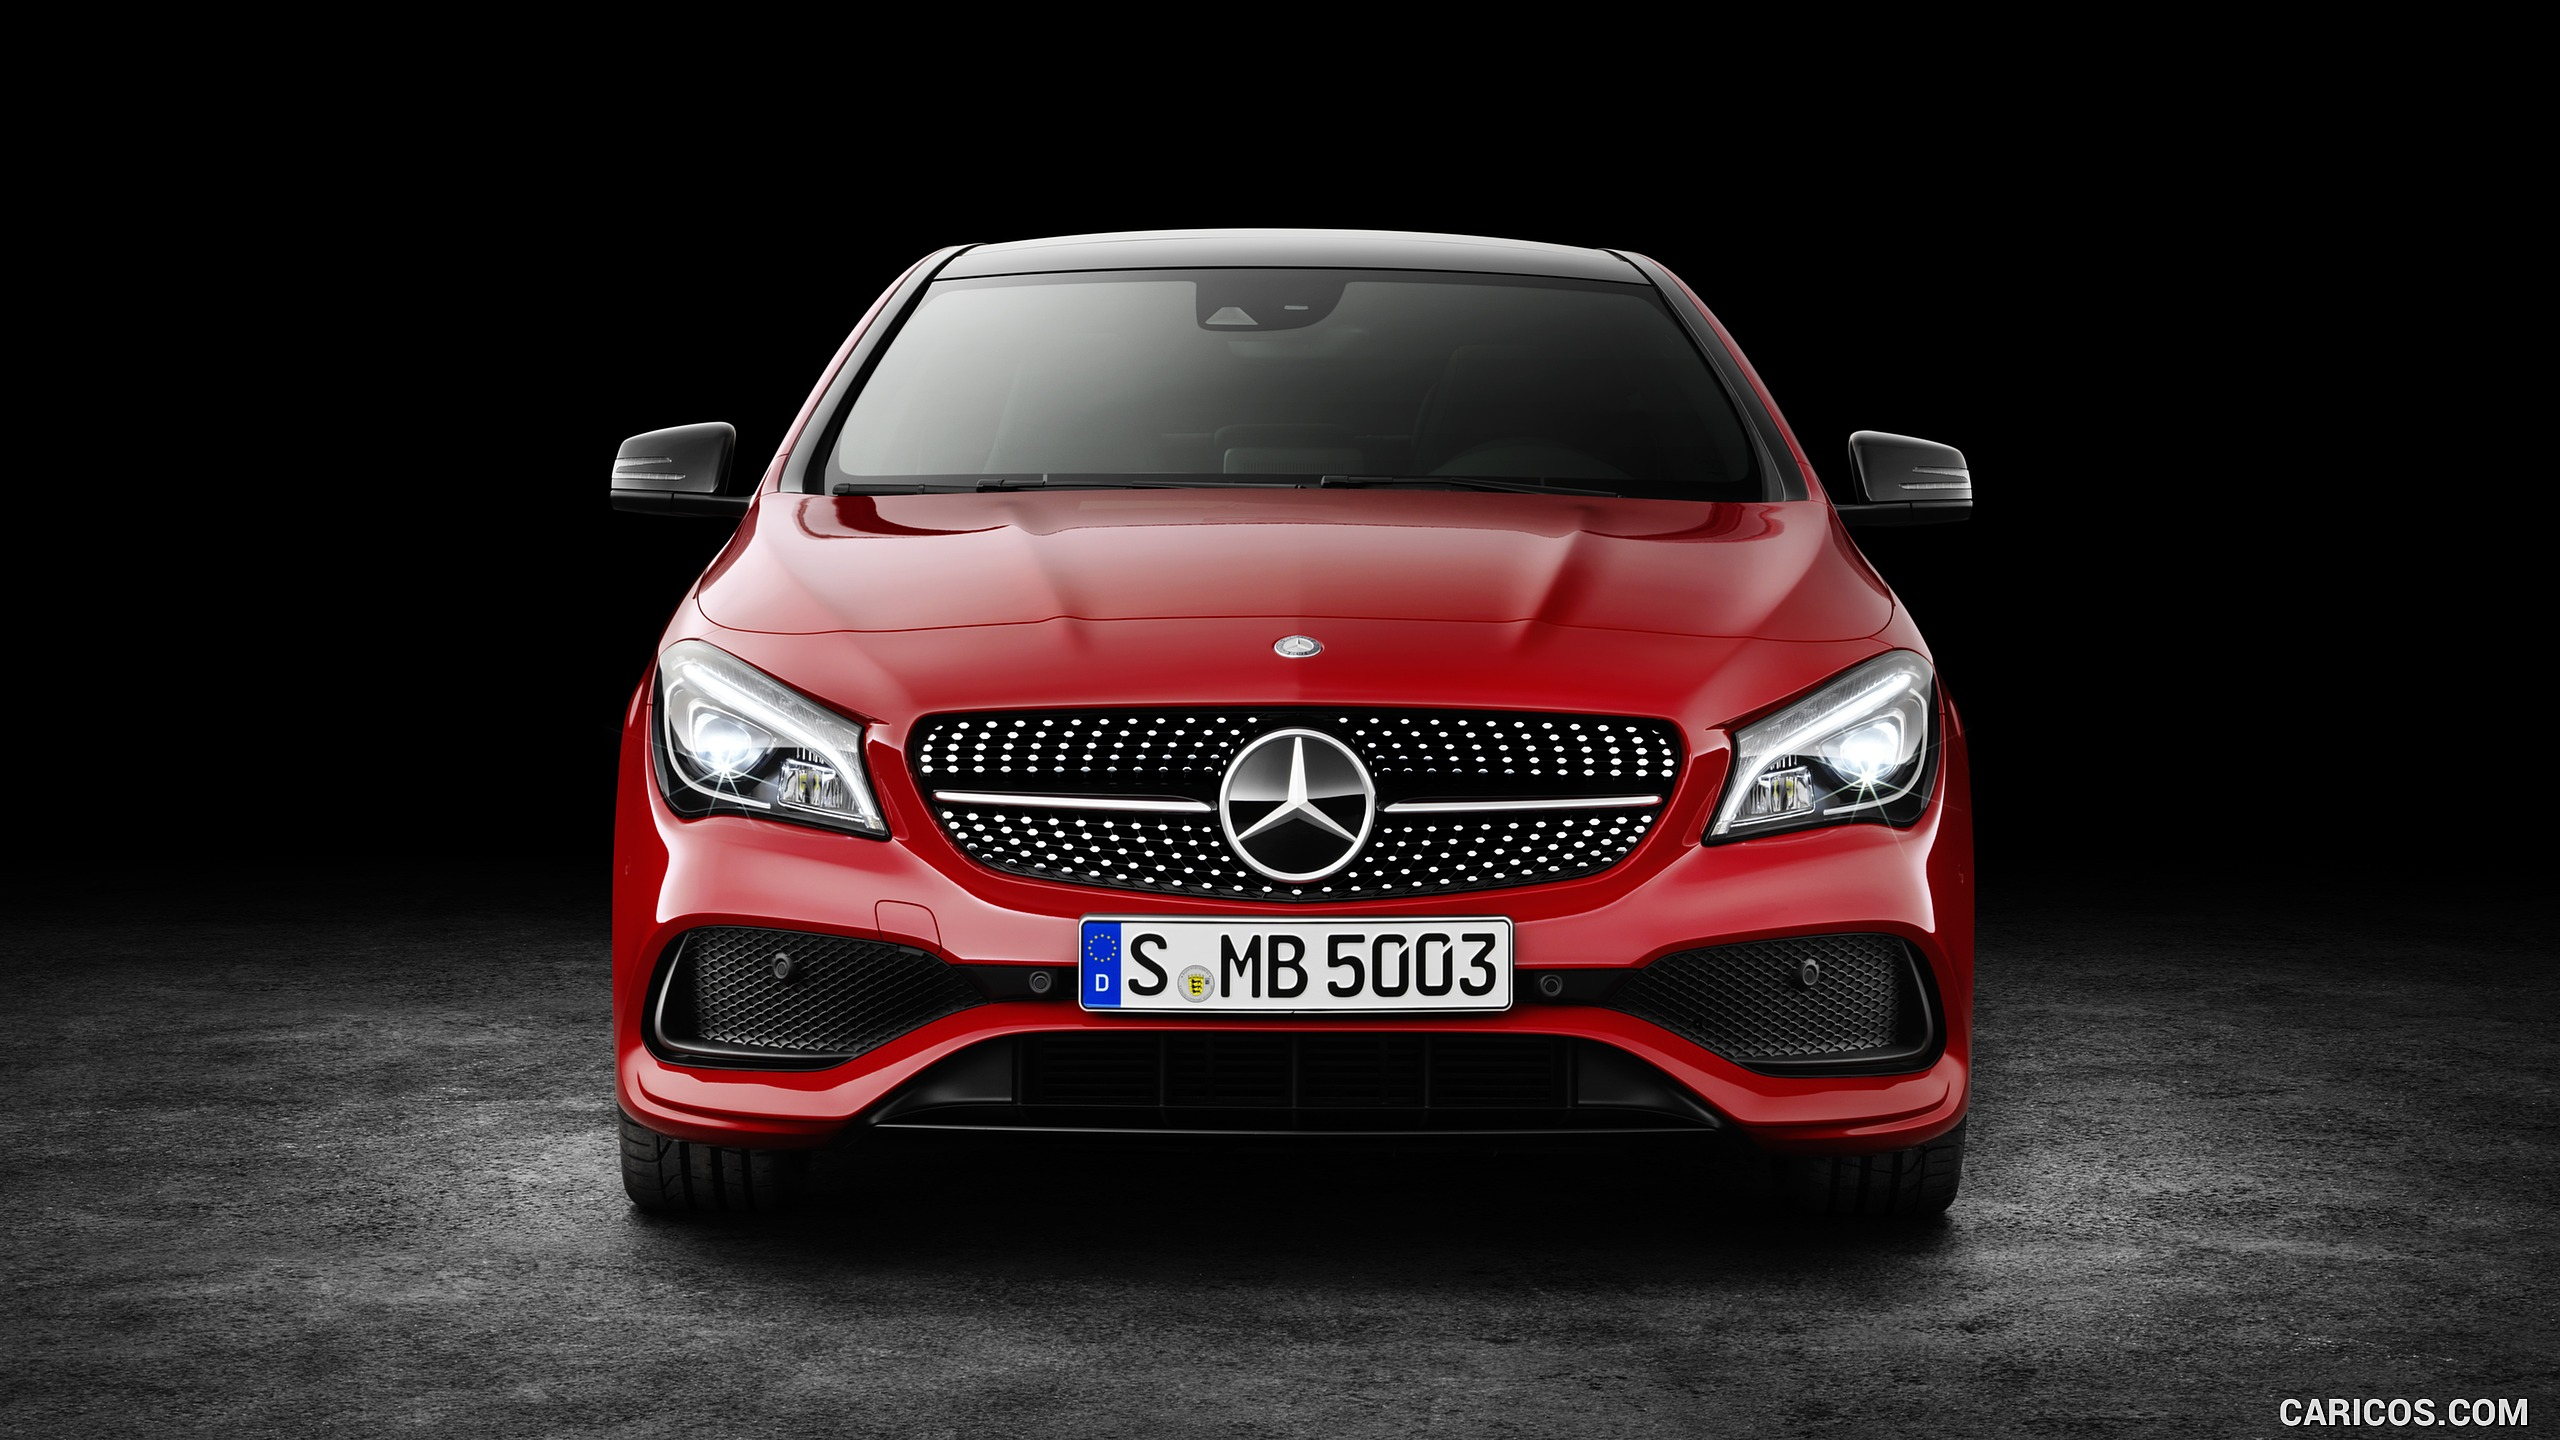 2017 Mercedes Benz CLA 200 d 4MATIC Coup Chassis C117 Color 2560x1440